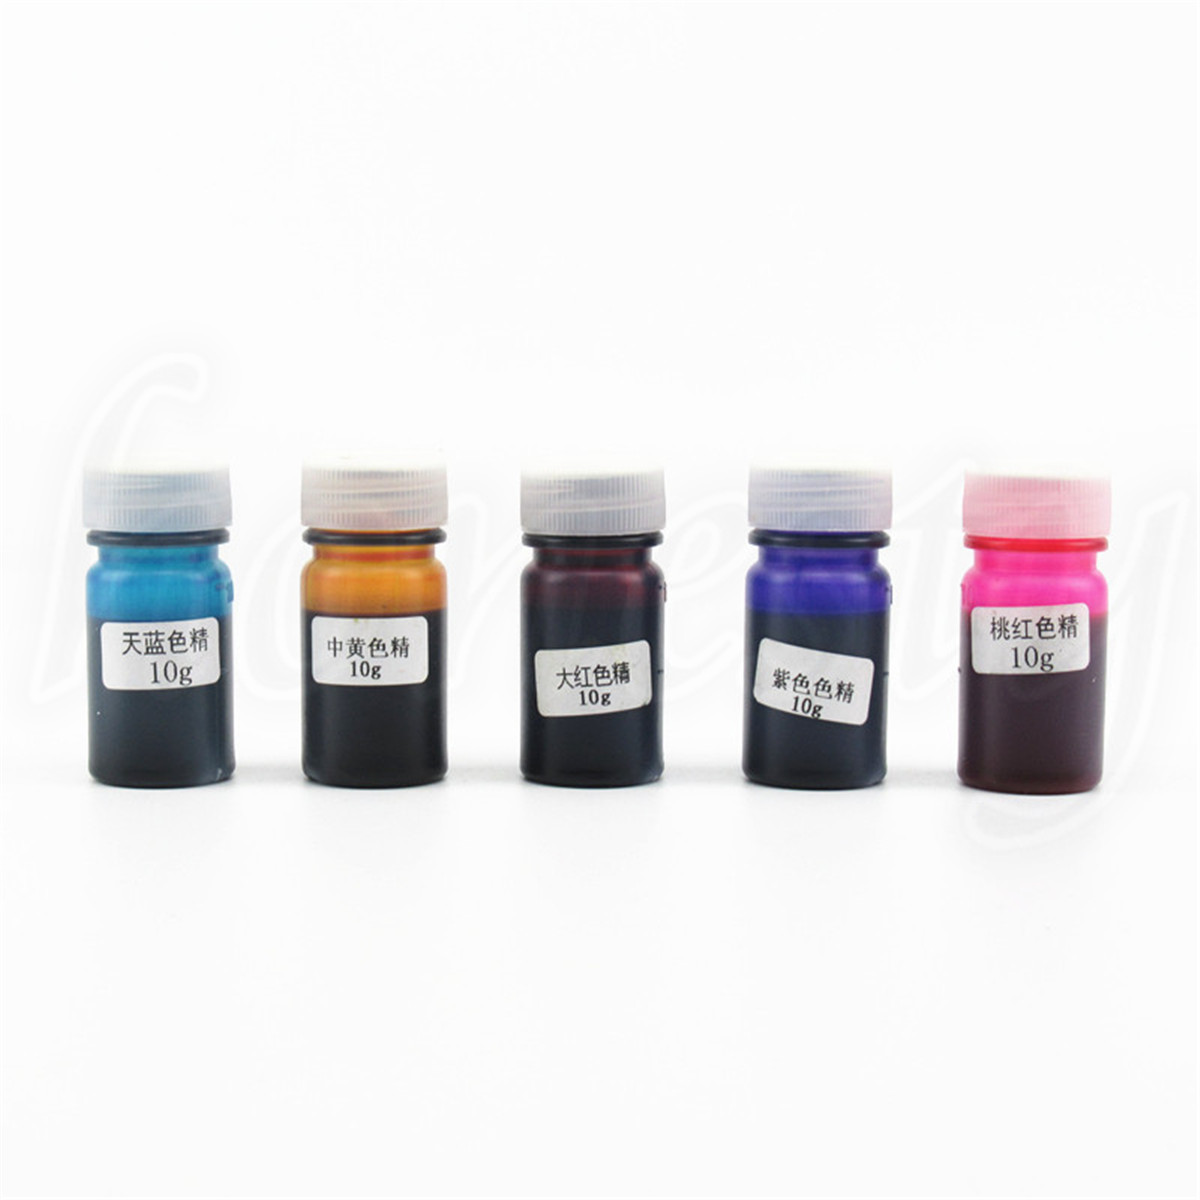 10 Colors 10g Epoxy UV Resin Dye Colorant Resin Pigment Mix Color ...